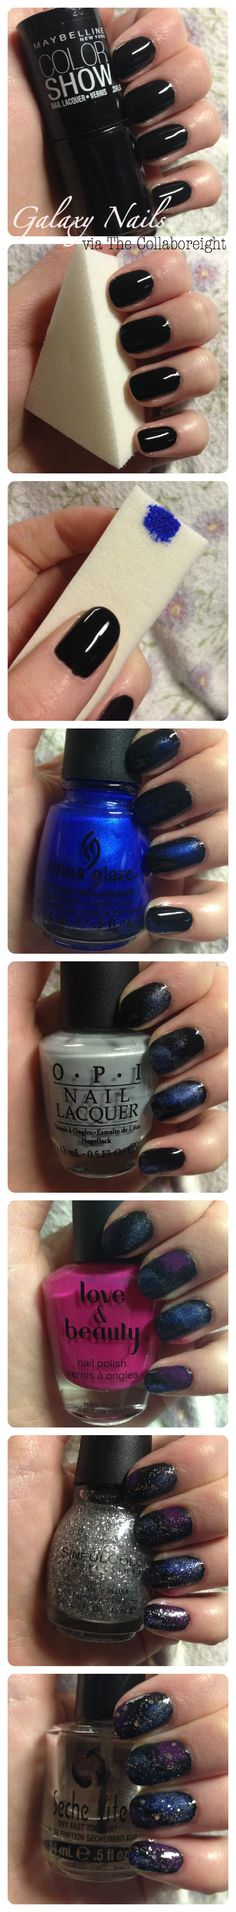 Check out our Galaxy Nails tutorial for #ManicureMonday!